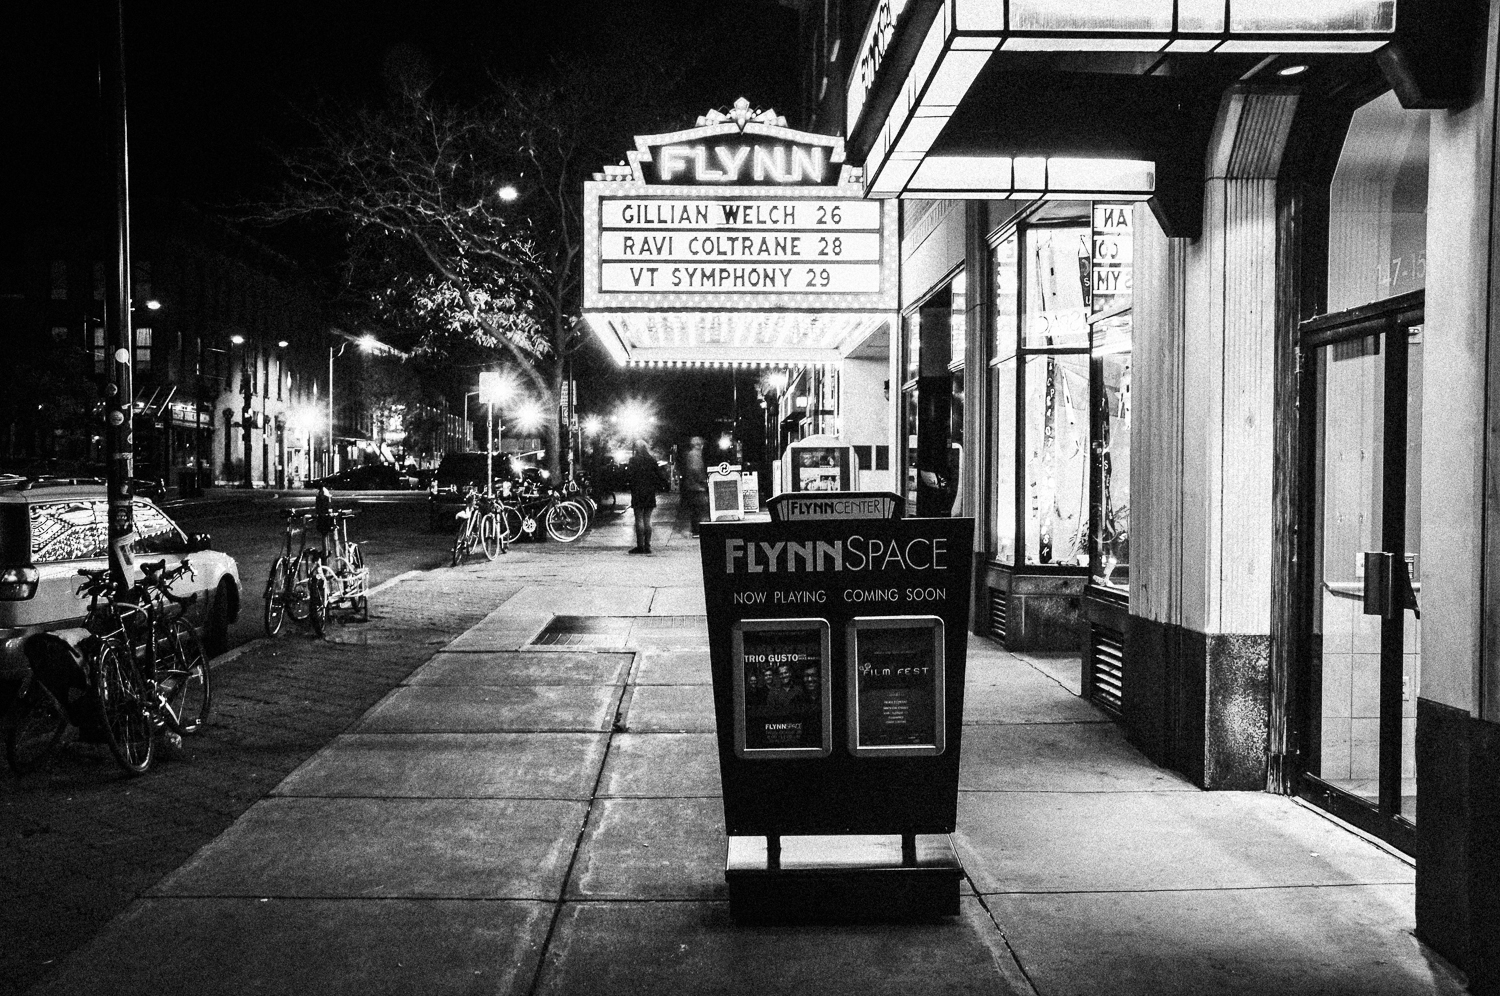 Flynn theater black and white